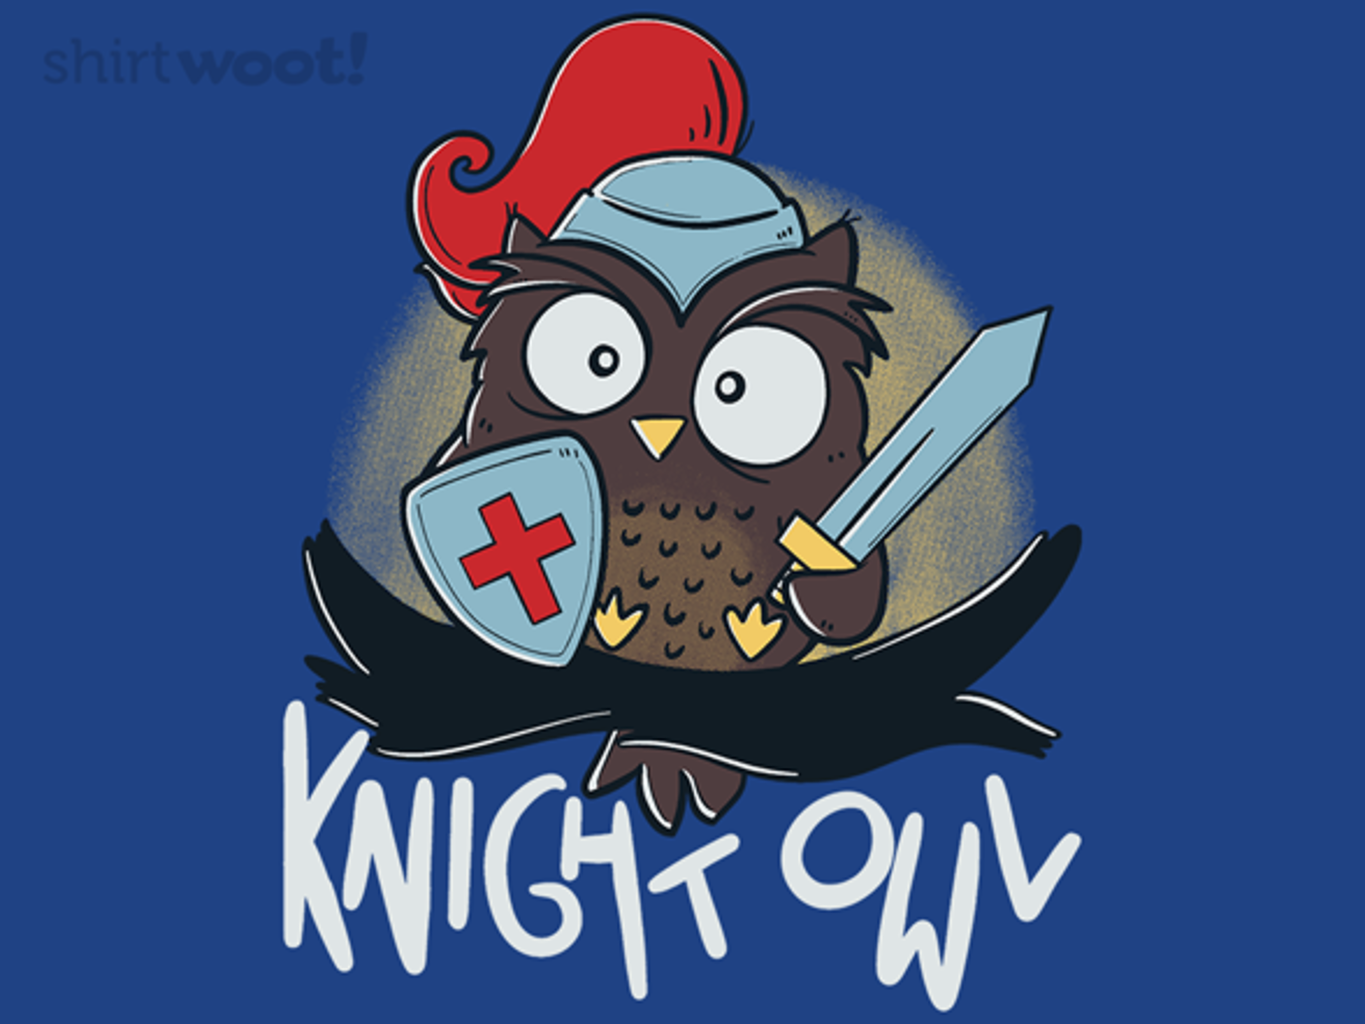 Woot!: Knight Owl